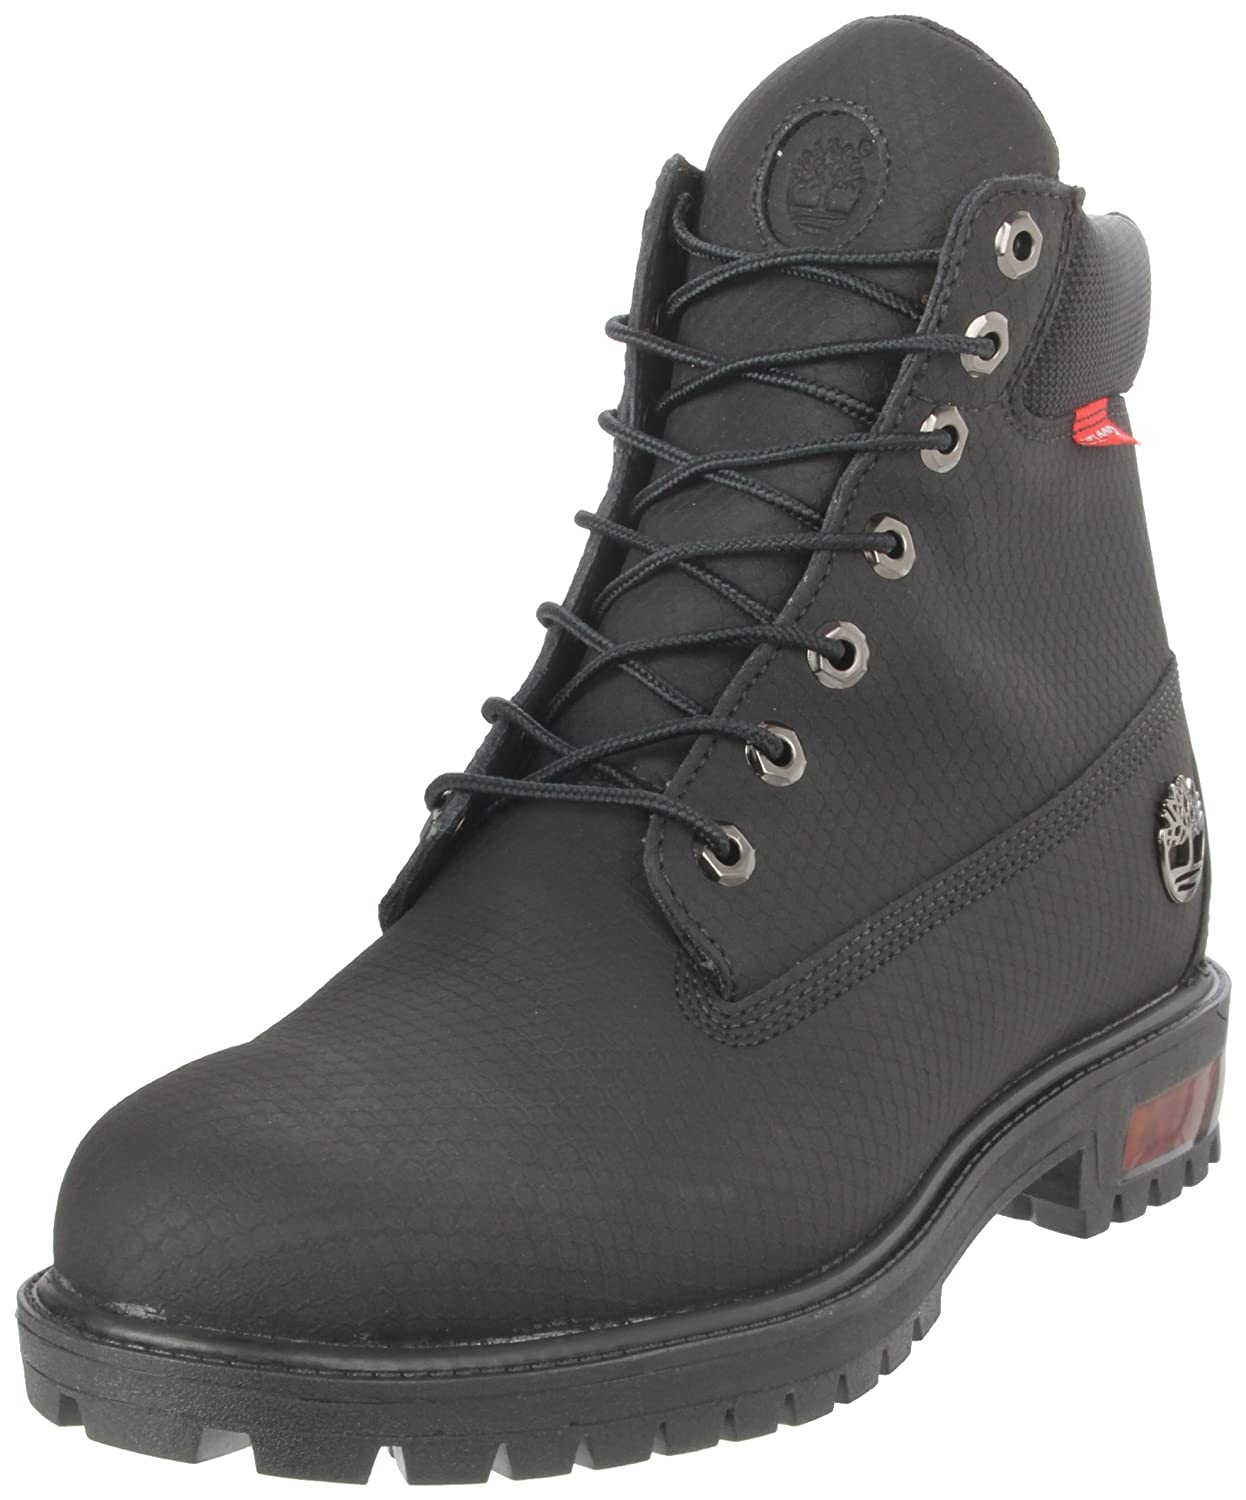 Timberland offers an assortment of footwear for men, women, and kids. Timberland makes rugged, durable, comfortable waterproof leather boots. Timberlands are premium and popular, bringing style, comfort, performance and eco-conscious elements to their leather waterproof shoes and boots.